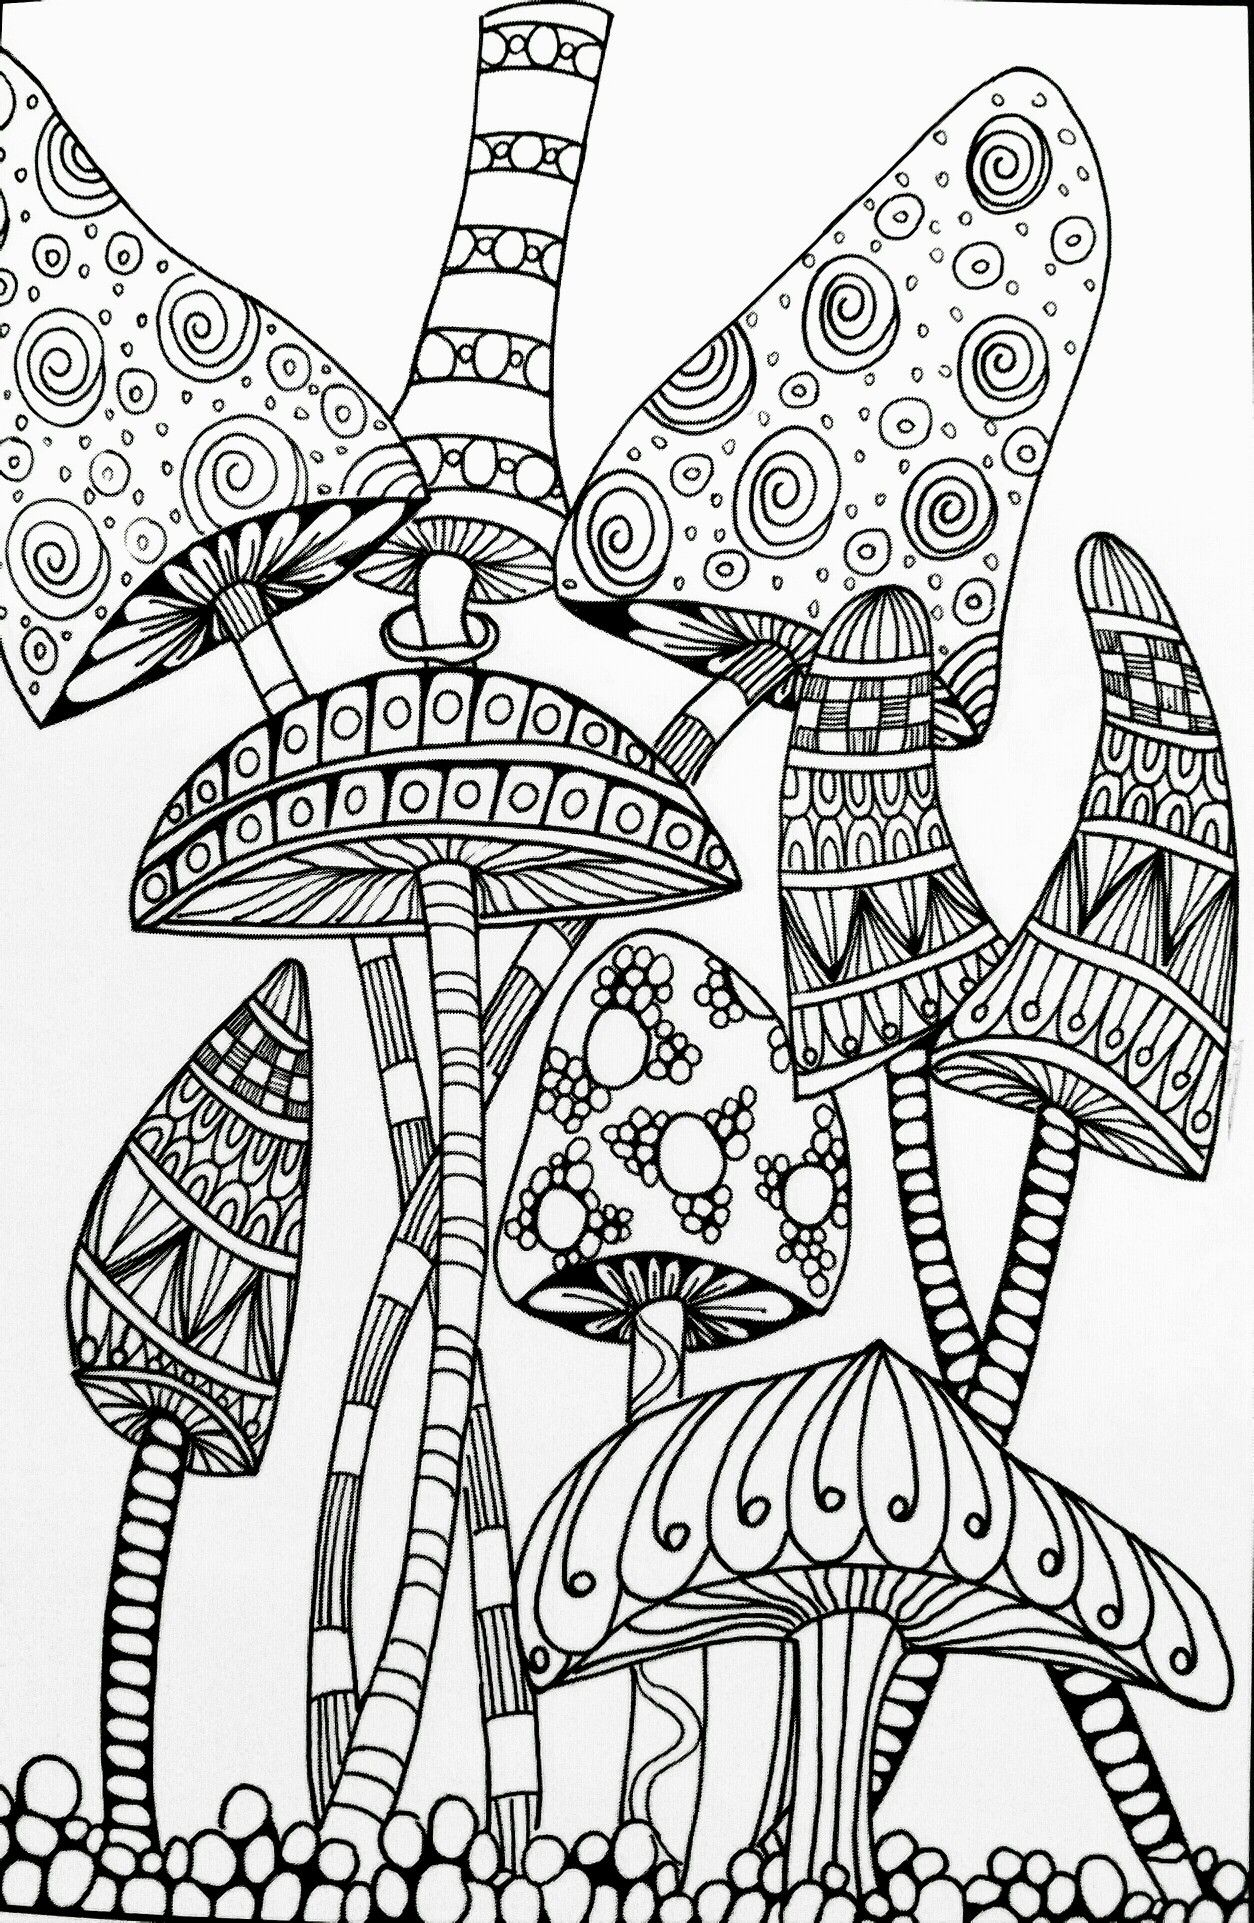 Trippy Mushroom Coloring Pages Free